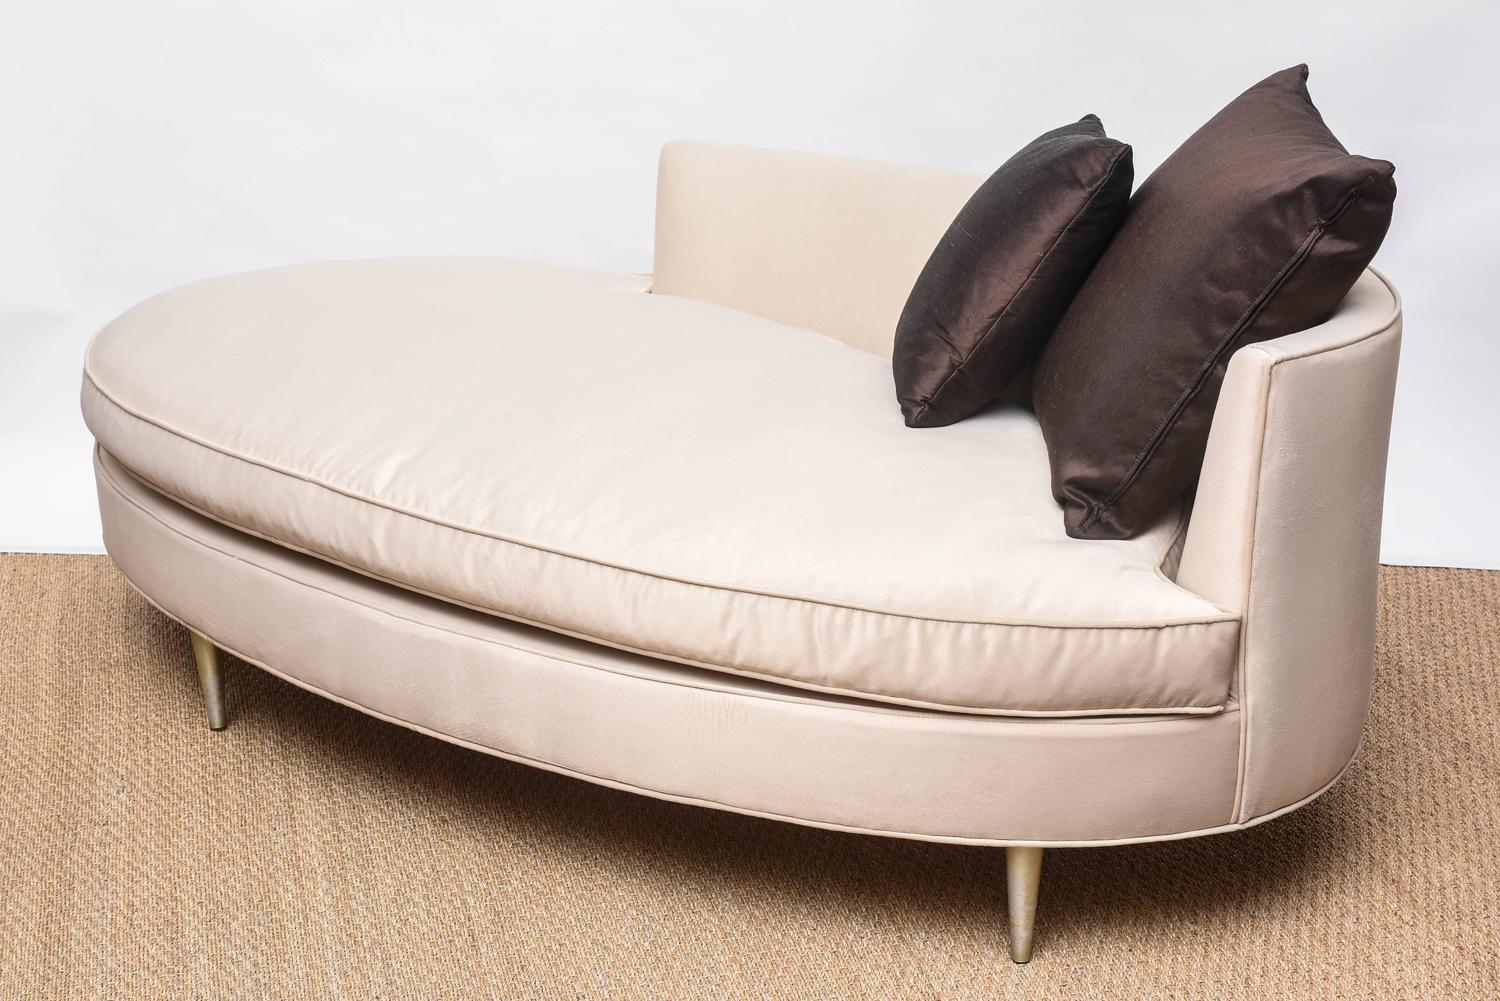 oval sofa fl bed shaped recamier chaise at 1stdibs